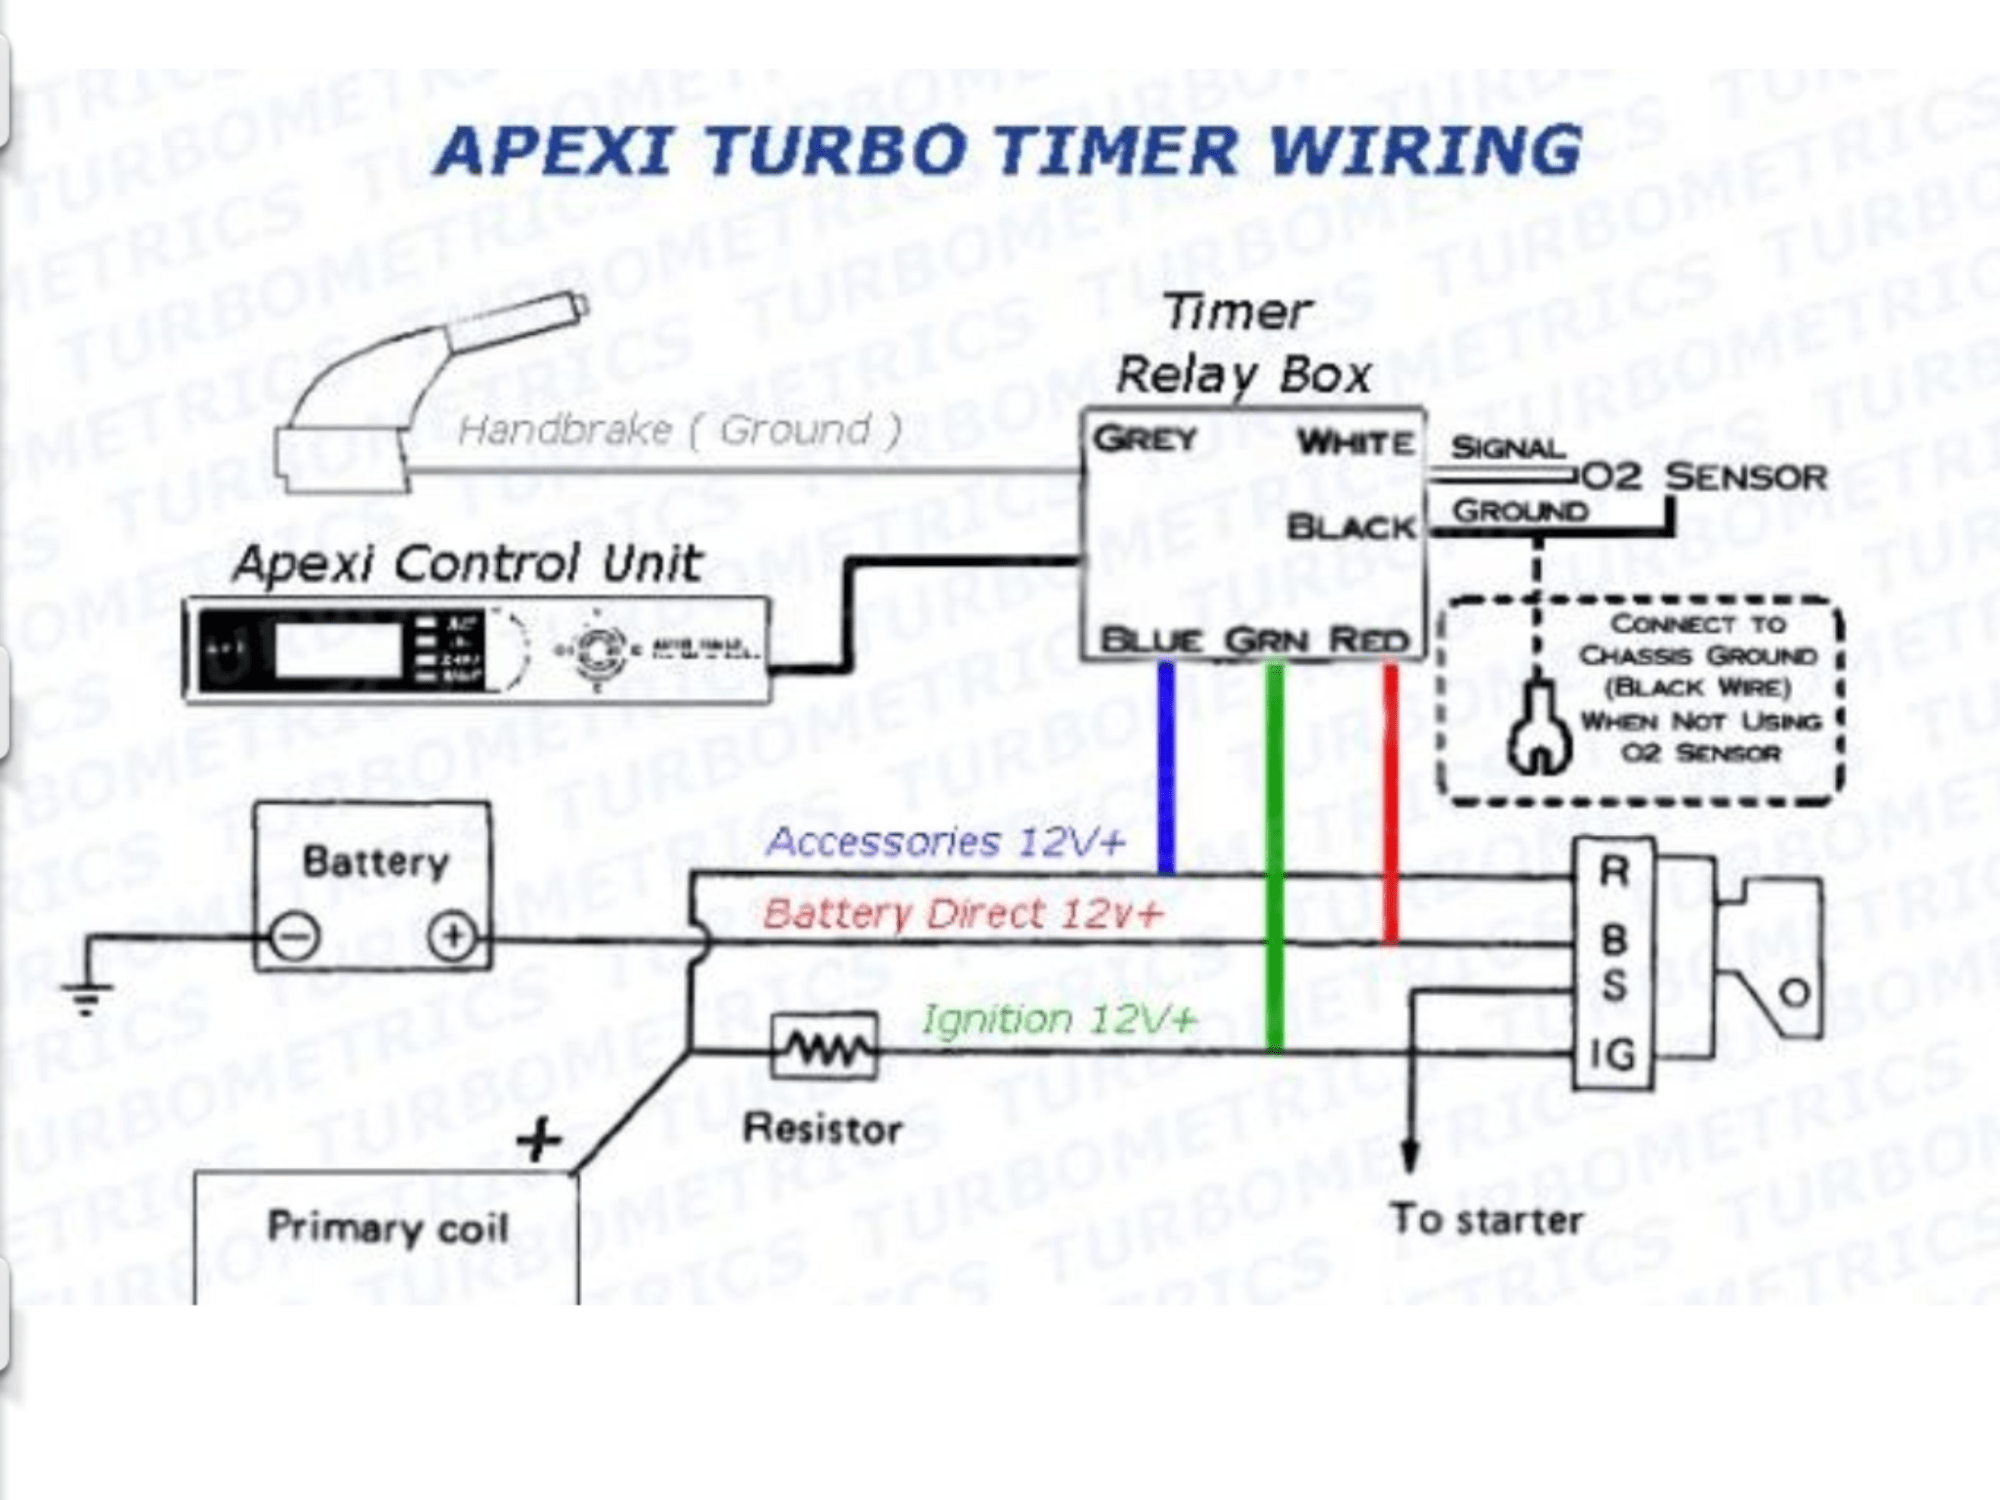 hight resolution of motorsports turbo timer wiring diagram schematic wiring libraryvolution turbo timer wiring diagram wiring diagram schematics dual